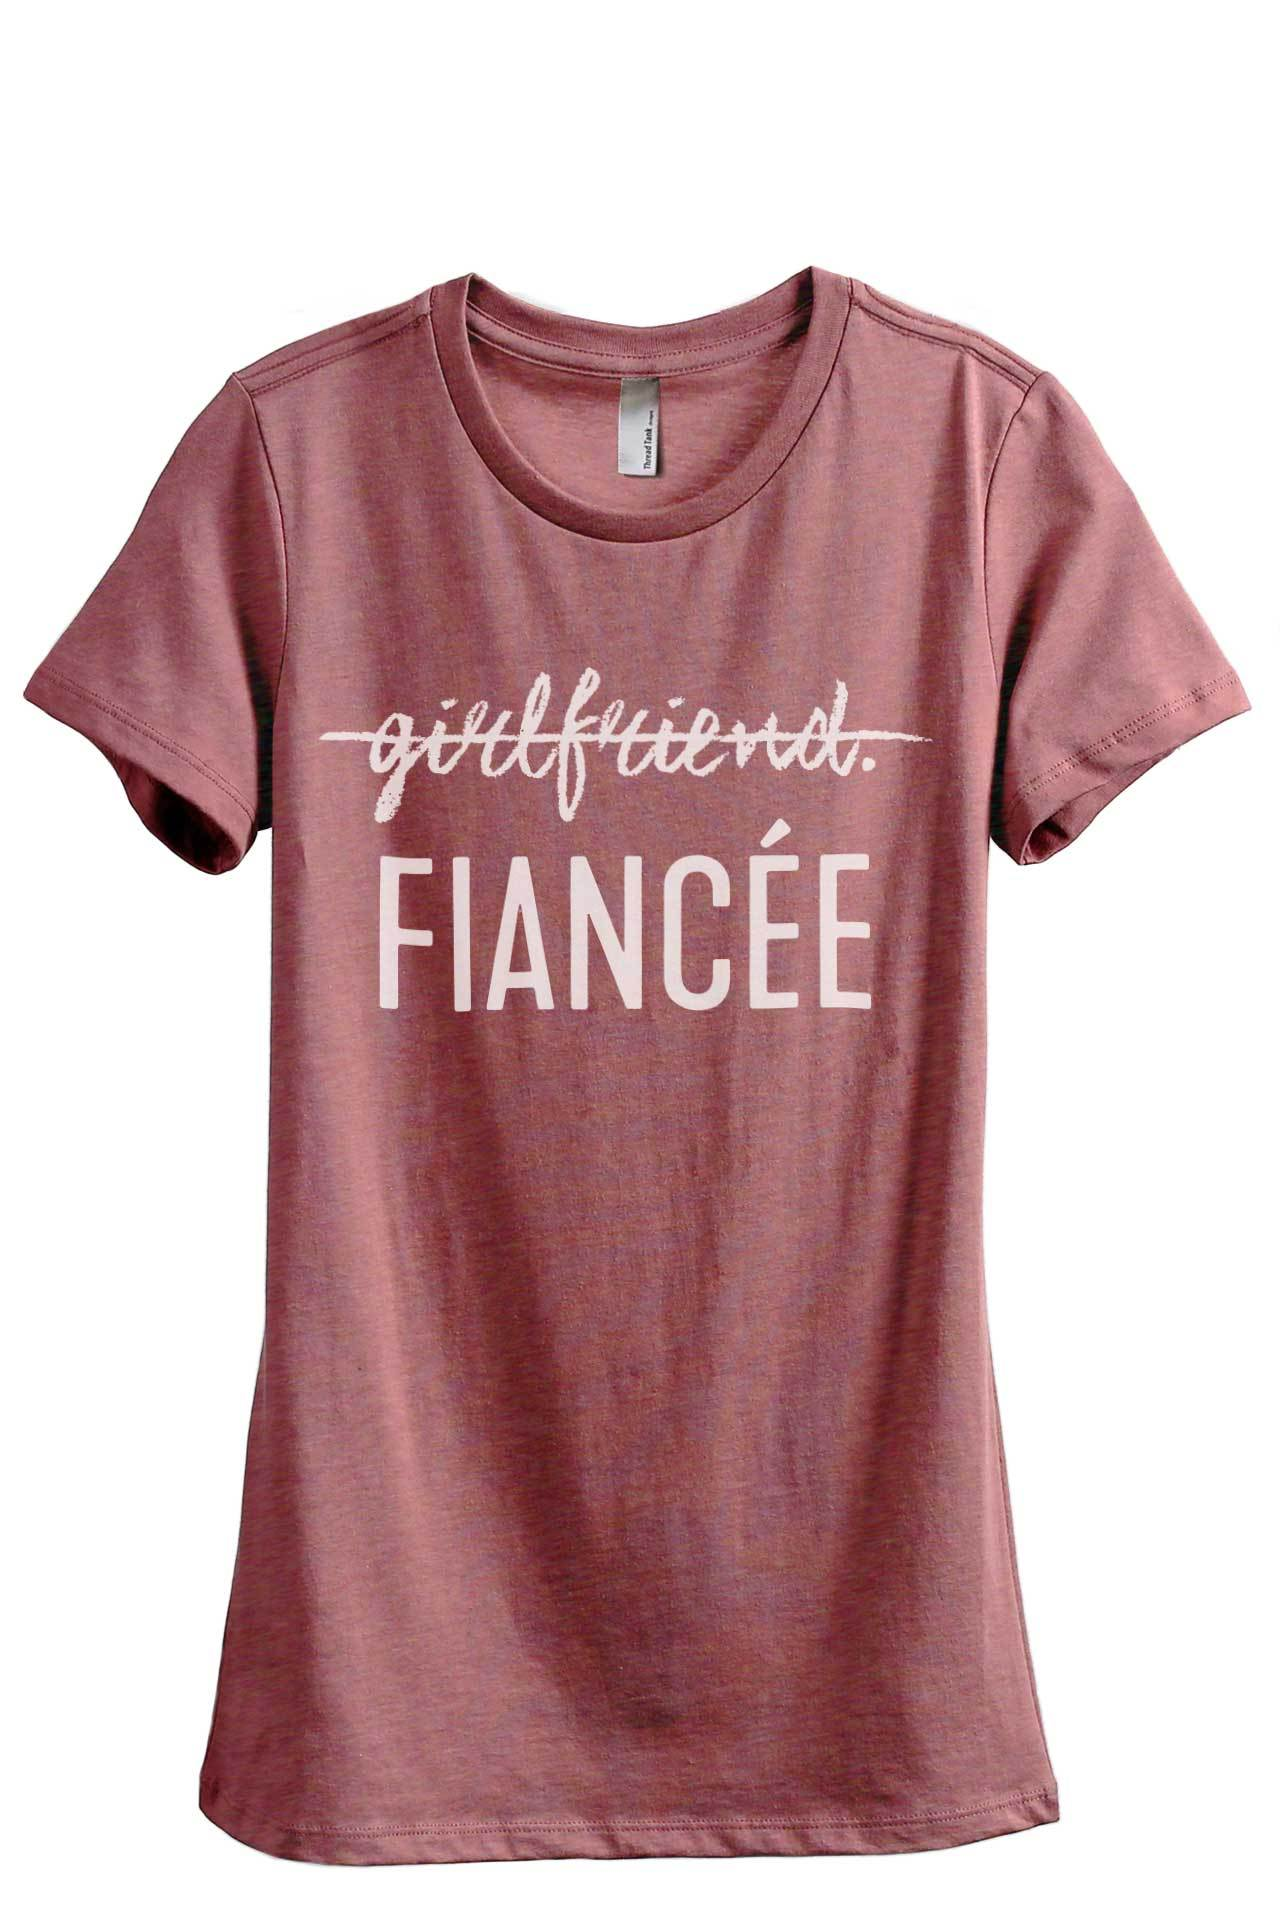 Girlfriend Fiancee - Thread Tank | Stories You Can Wear | T-Shirts, Tank Tops and Sweatshirts